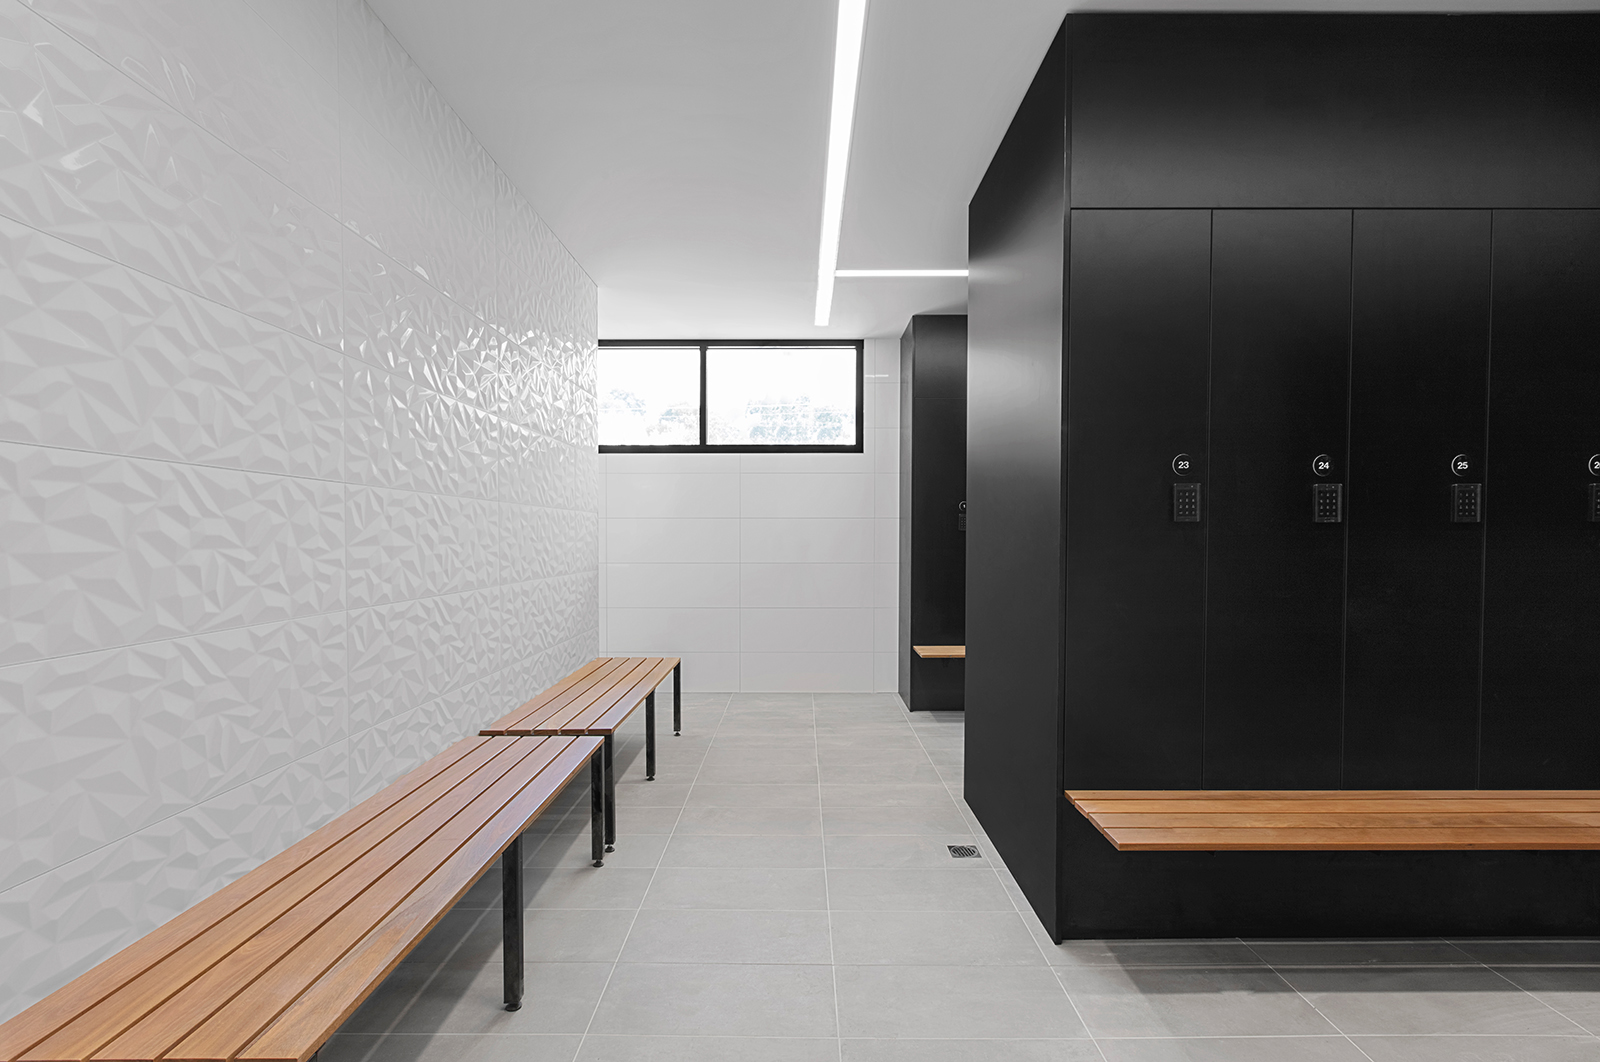 Timber bench seating and lockers by Lockin